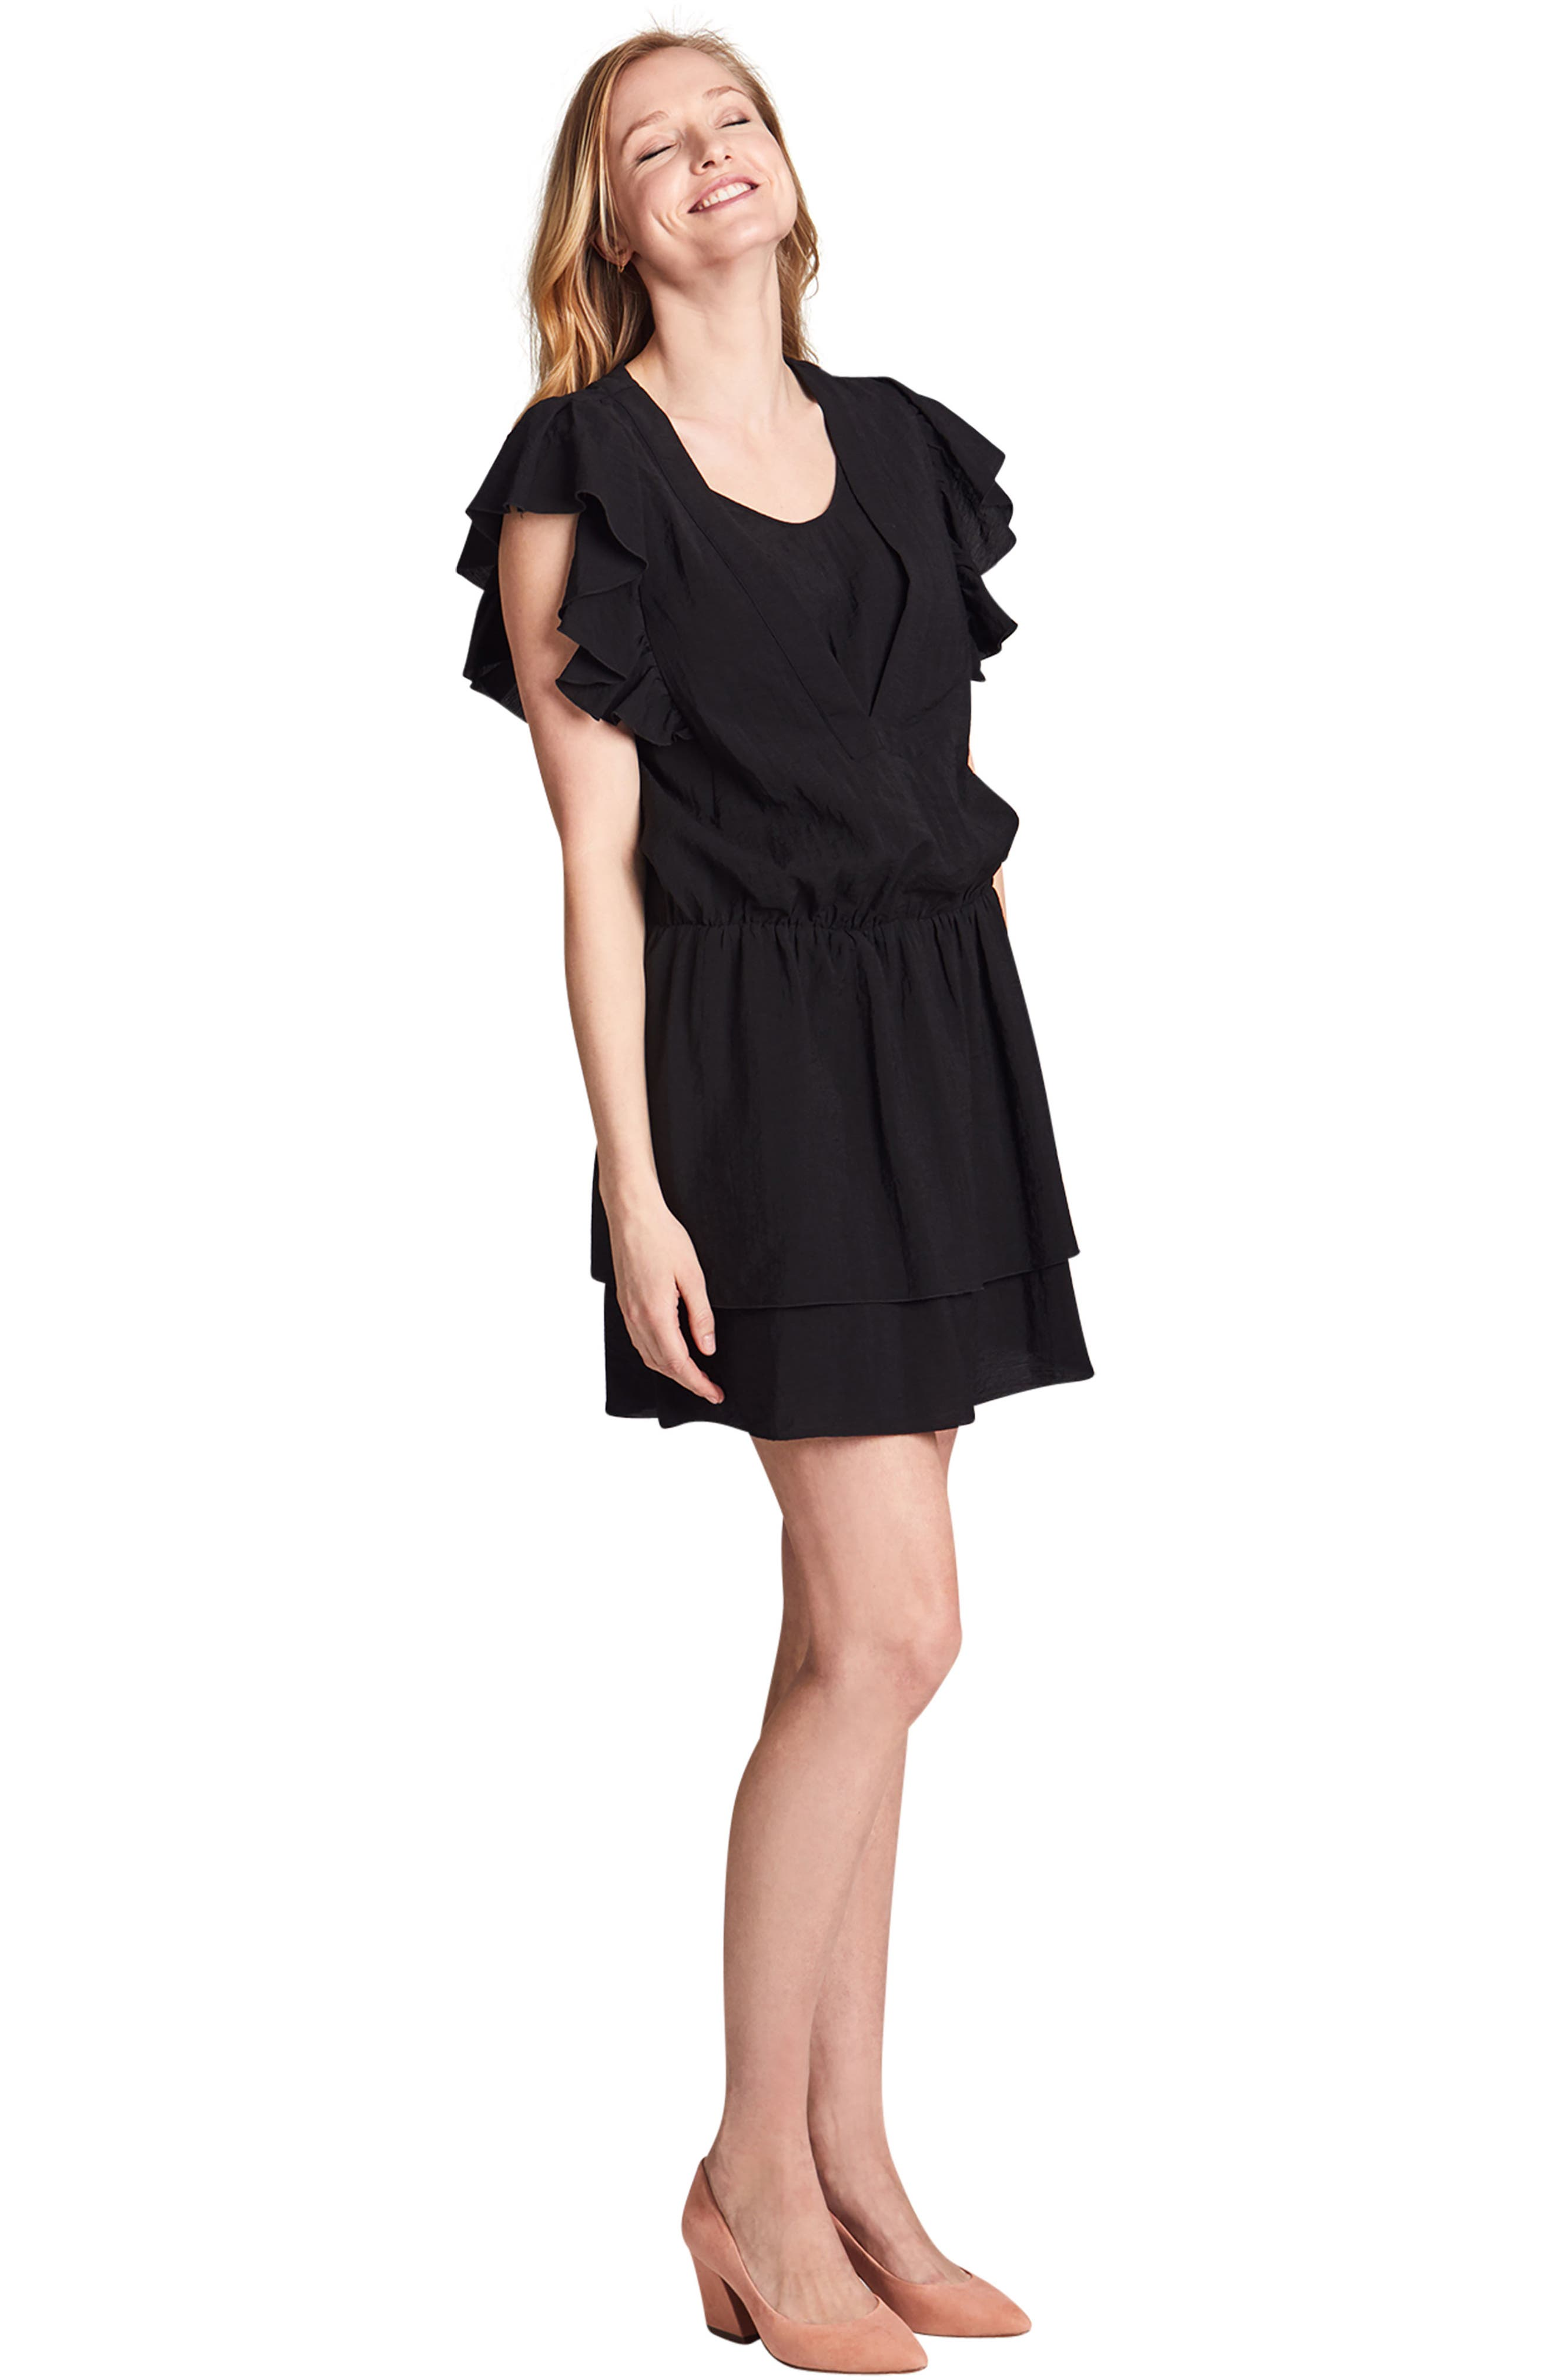 Naomi Nursing Dress,                             Alternate thumbnail 4, color,                             BLACK